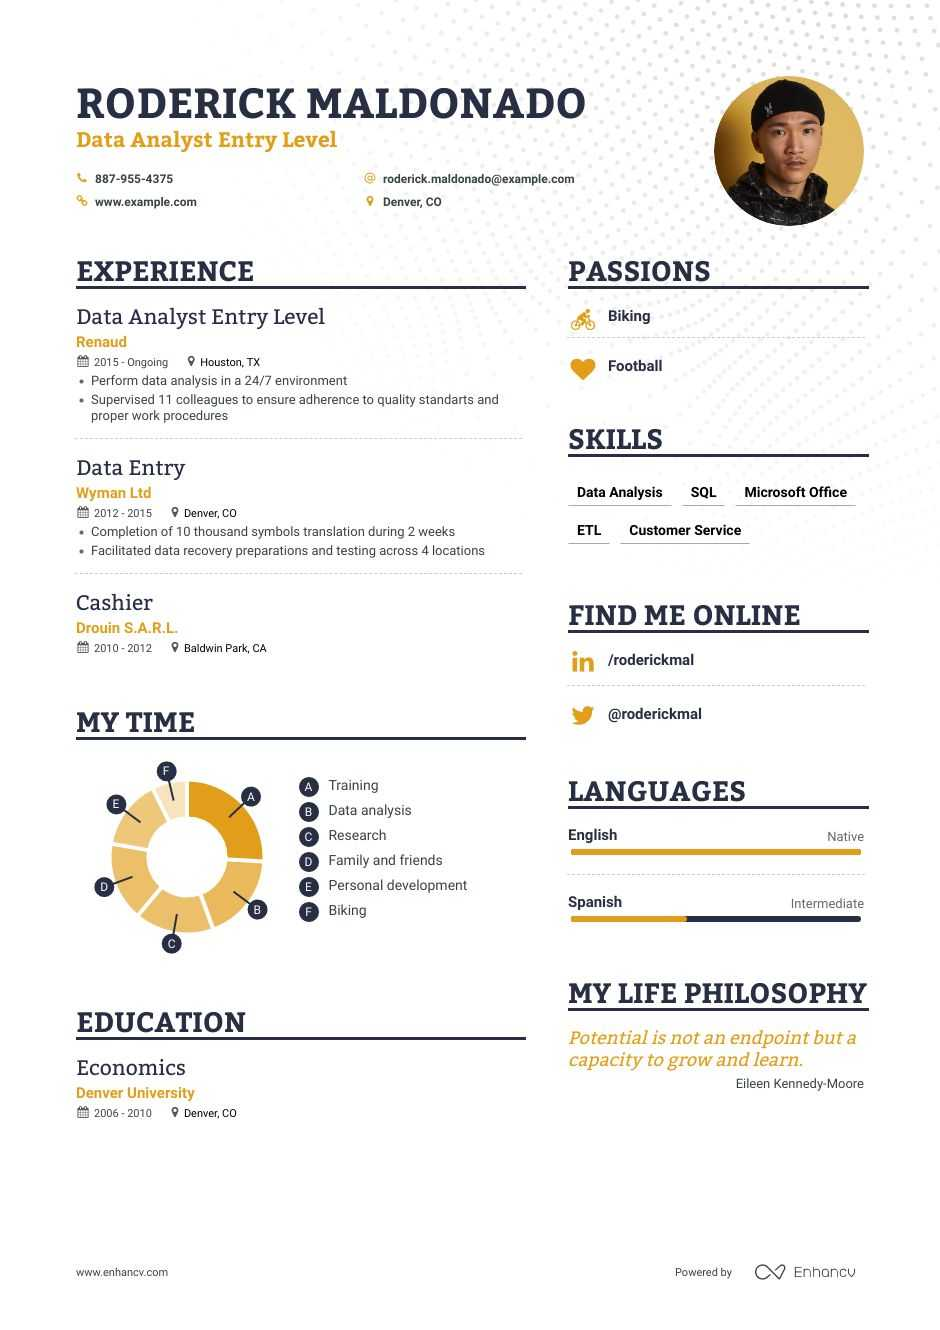 data analyst entry level resume examples inside to tips enhancv analysis experience house Resume Data Analysis Experience Resume